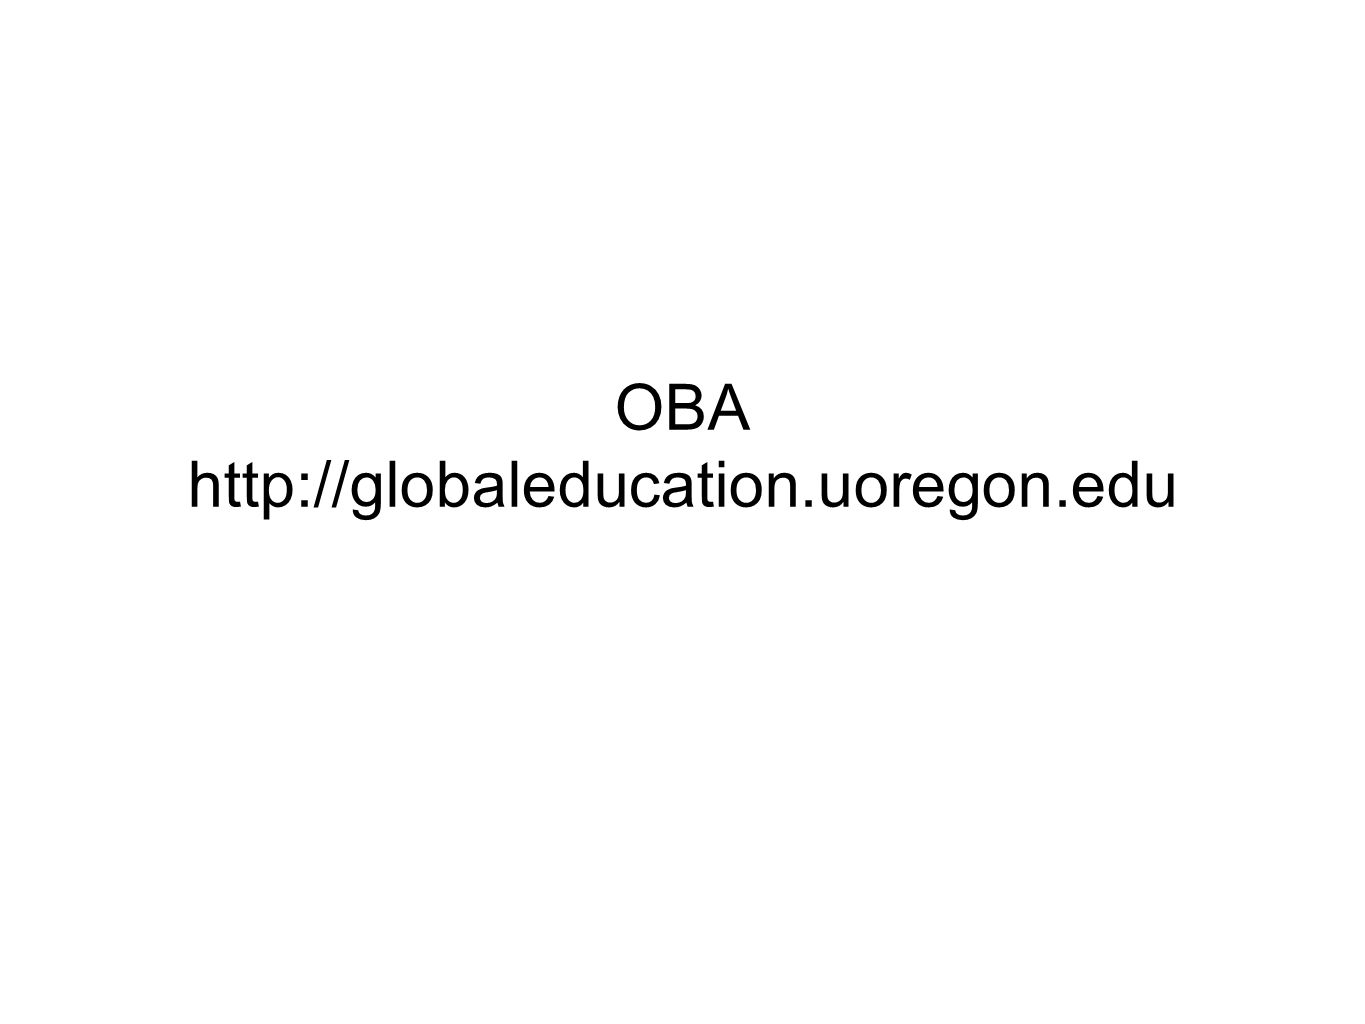 OBA http://globaleducation.uoregon.edu